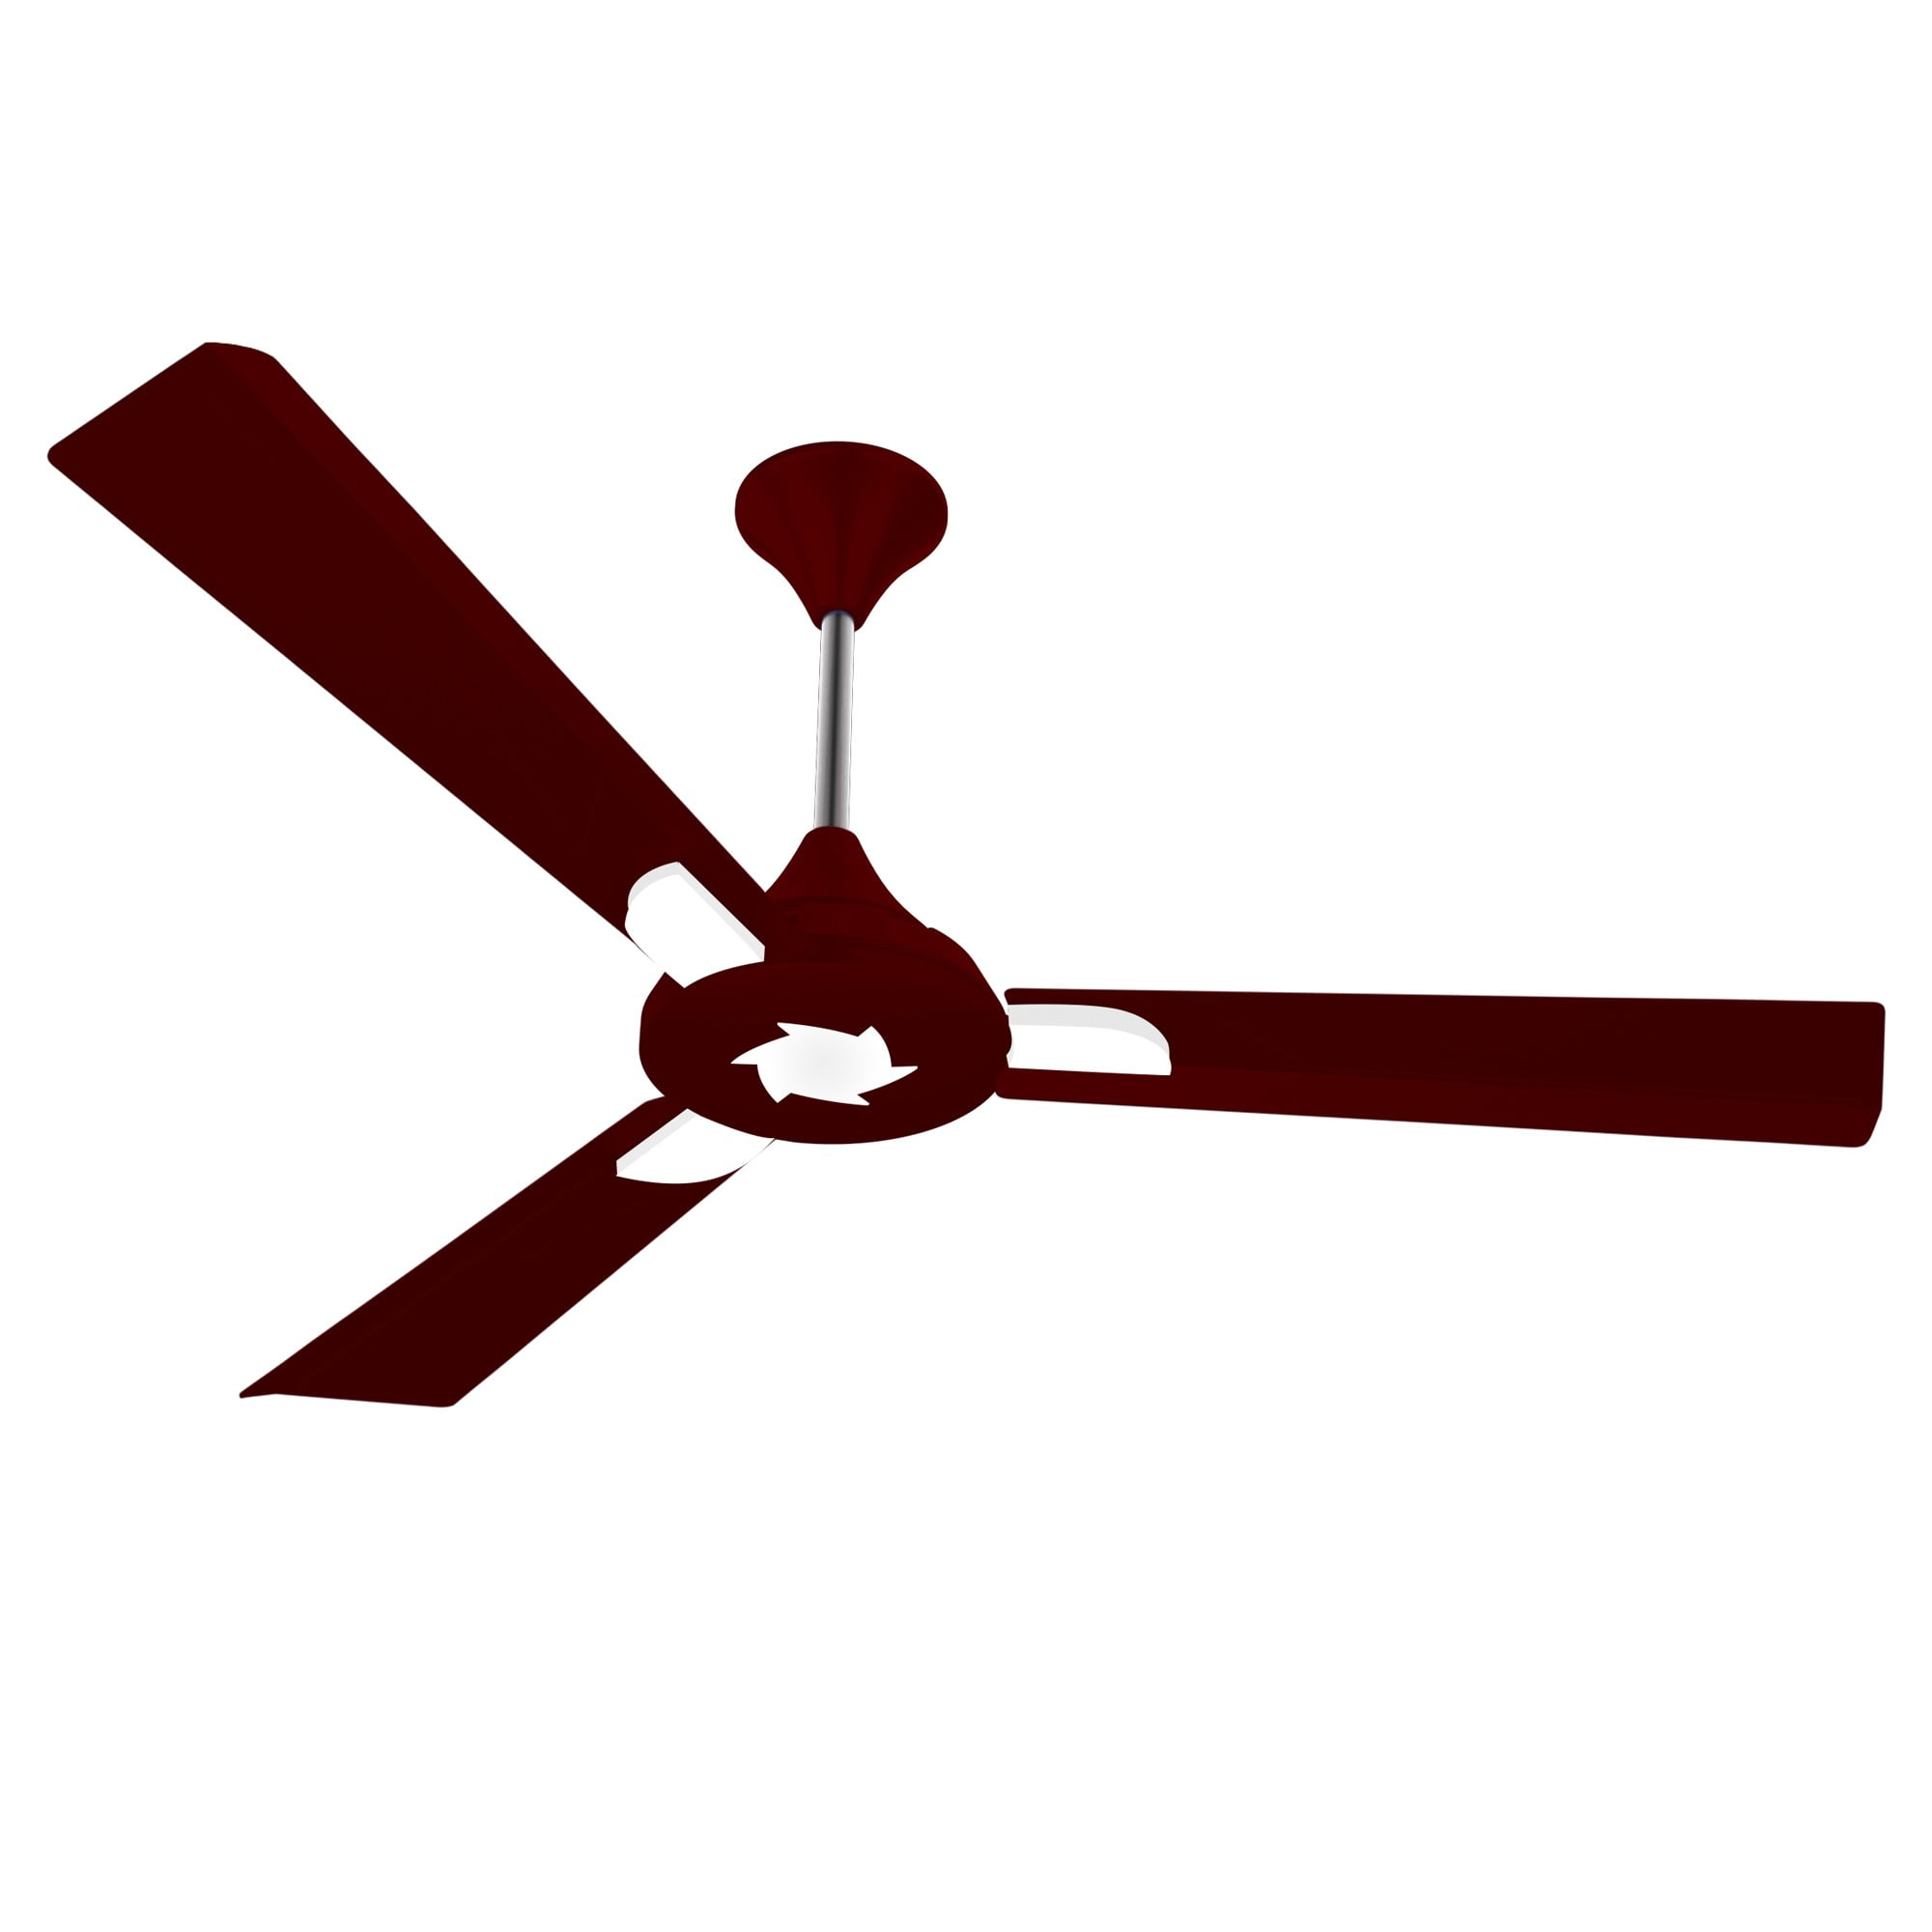 "Conion Ceiling Fan Sigma 56"" 3 Blades (Brilliant Maroon)"